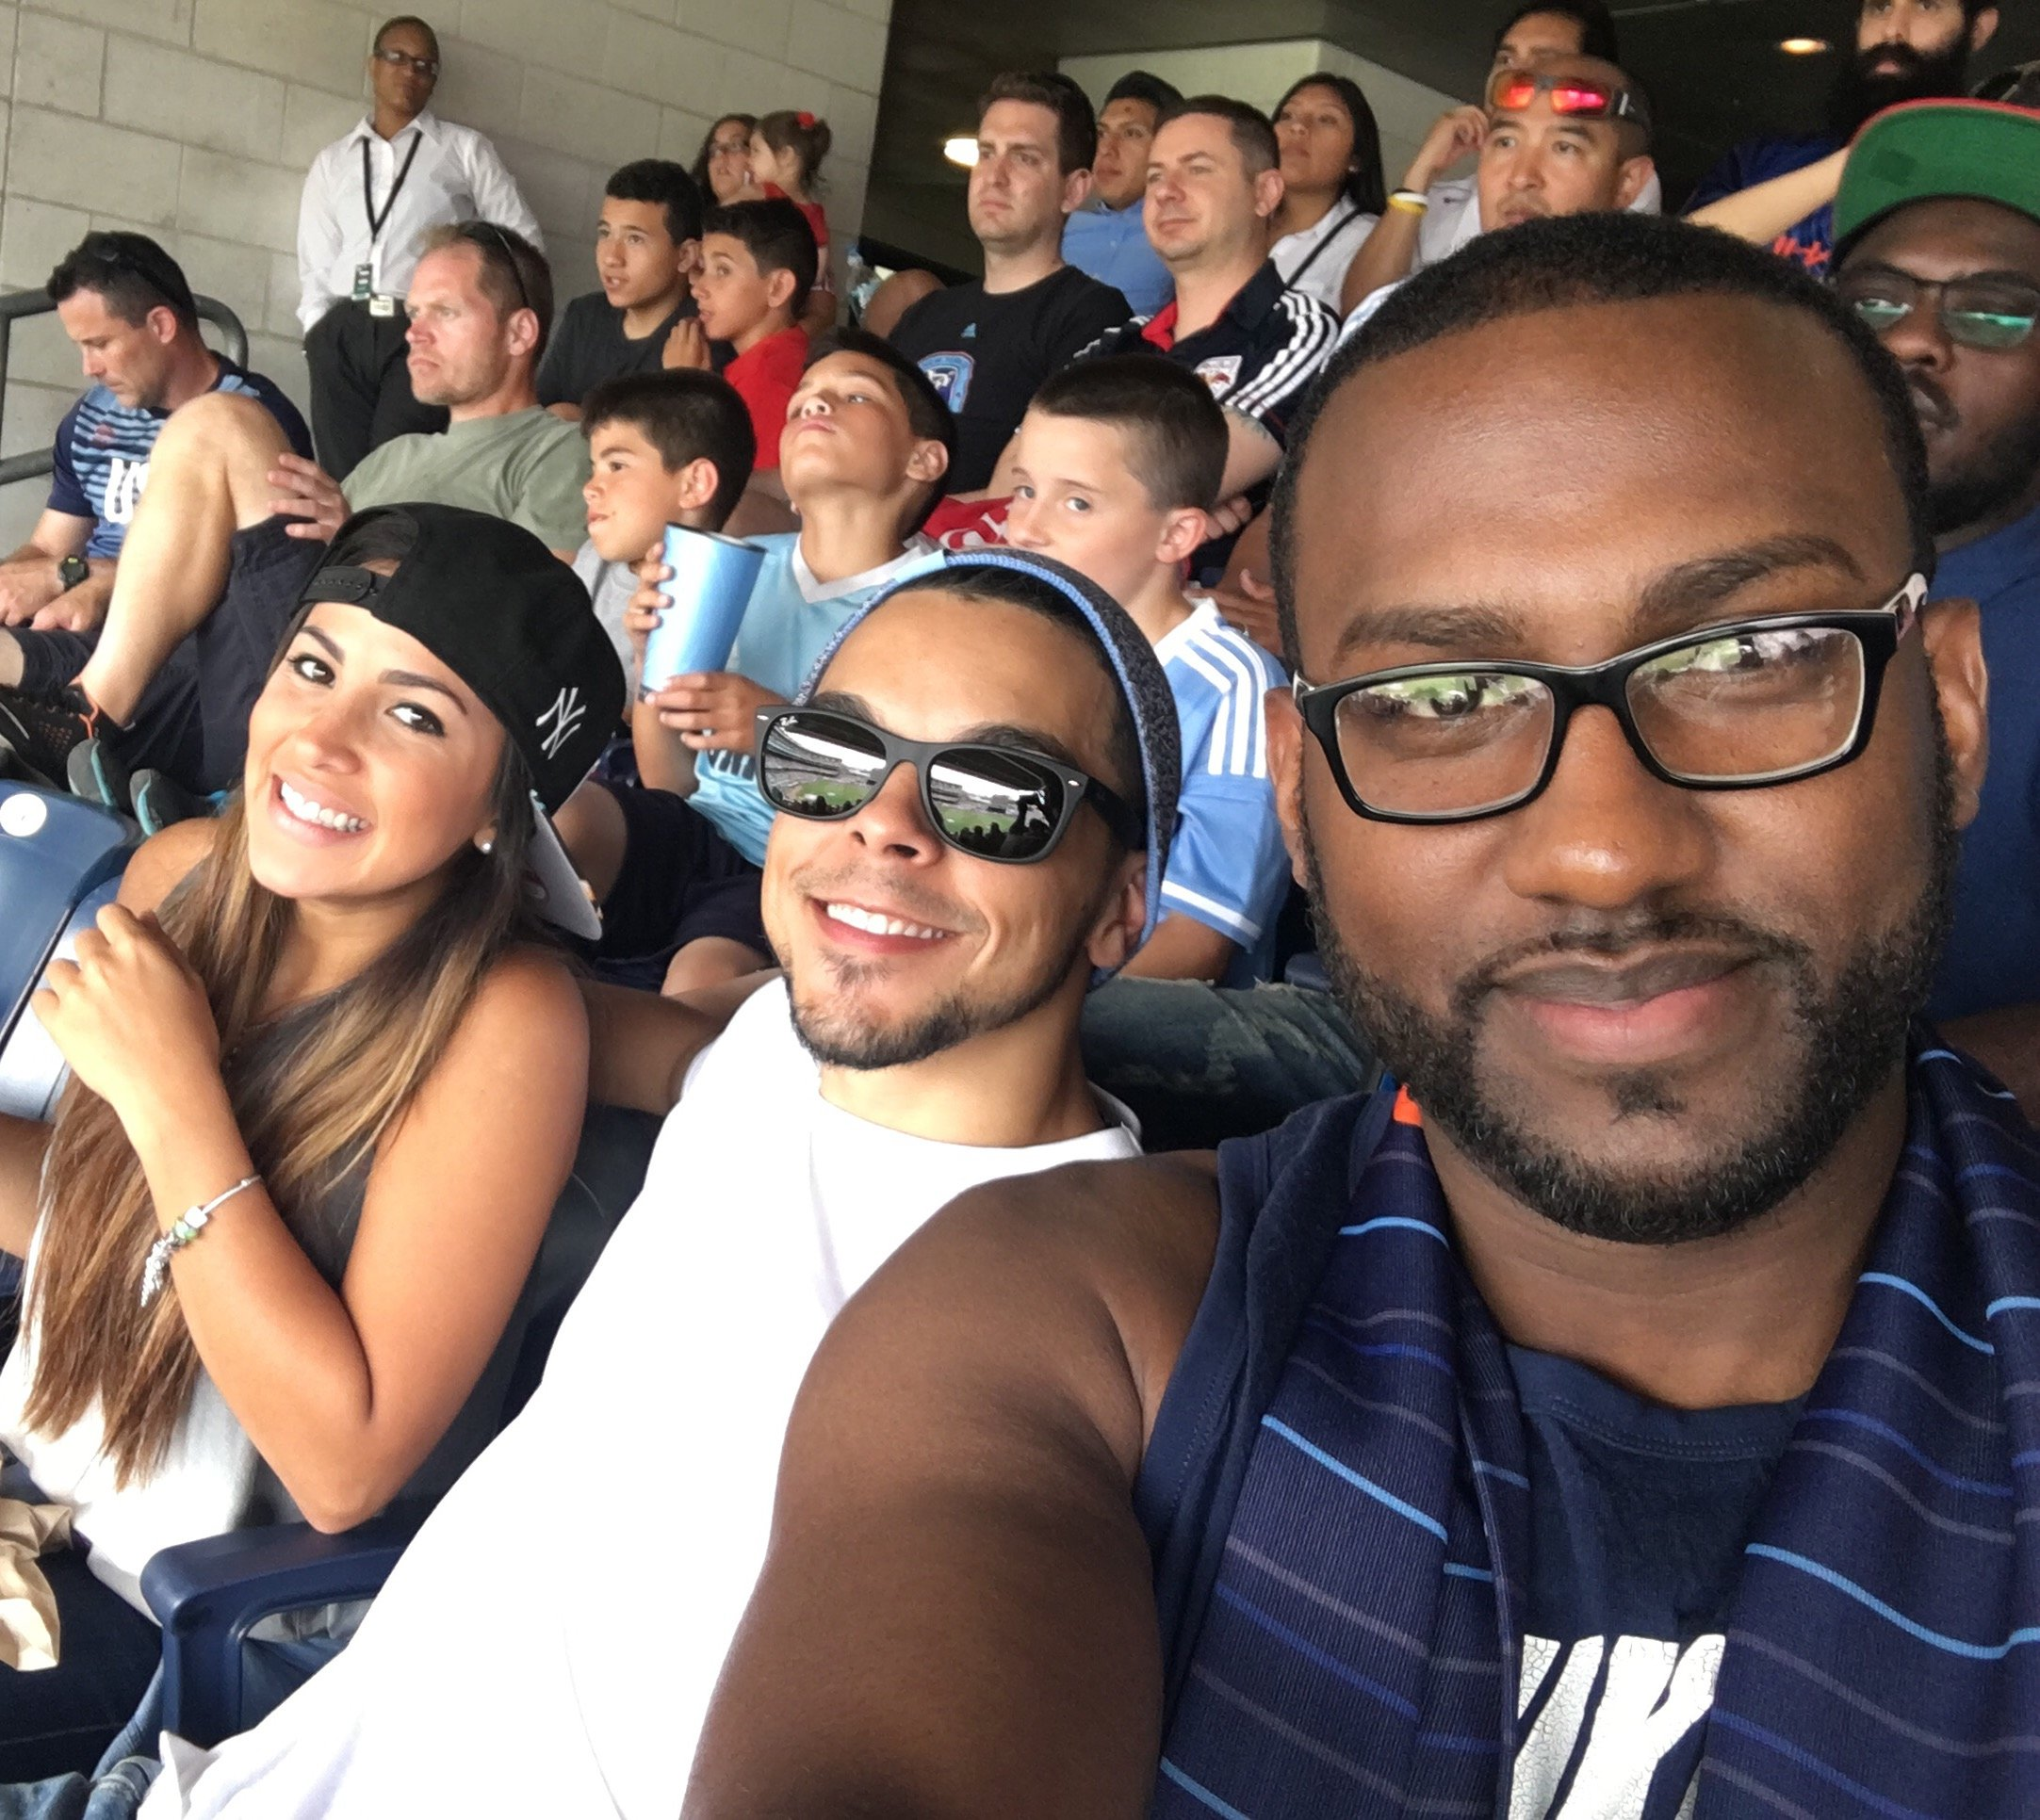 """""""As expected great tix from Vettix and sponsors. Yankee stadium was full and very energetic and we won so it was a great experience for me and my freinds. Loved it!"""" - US Army Serviceman"""